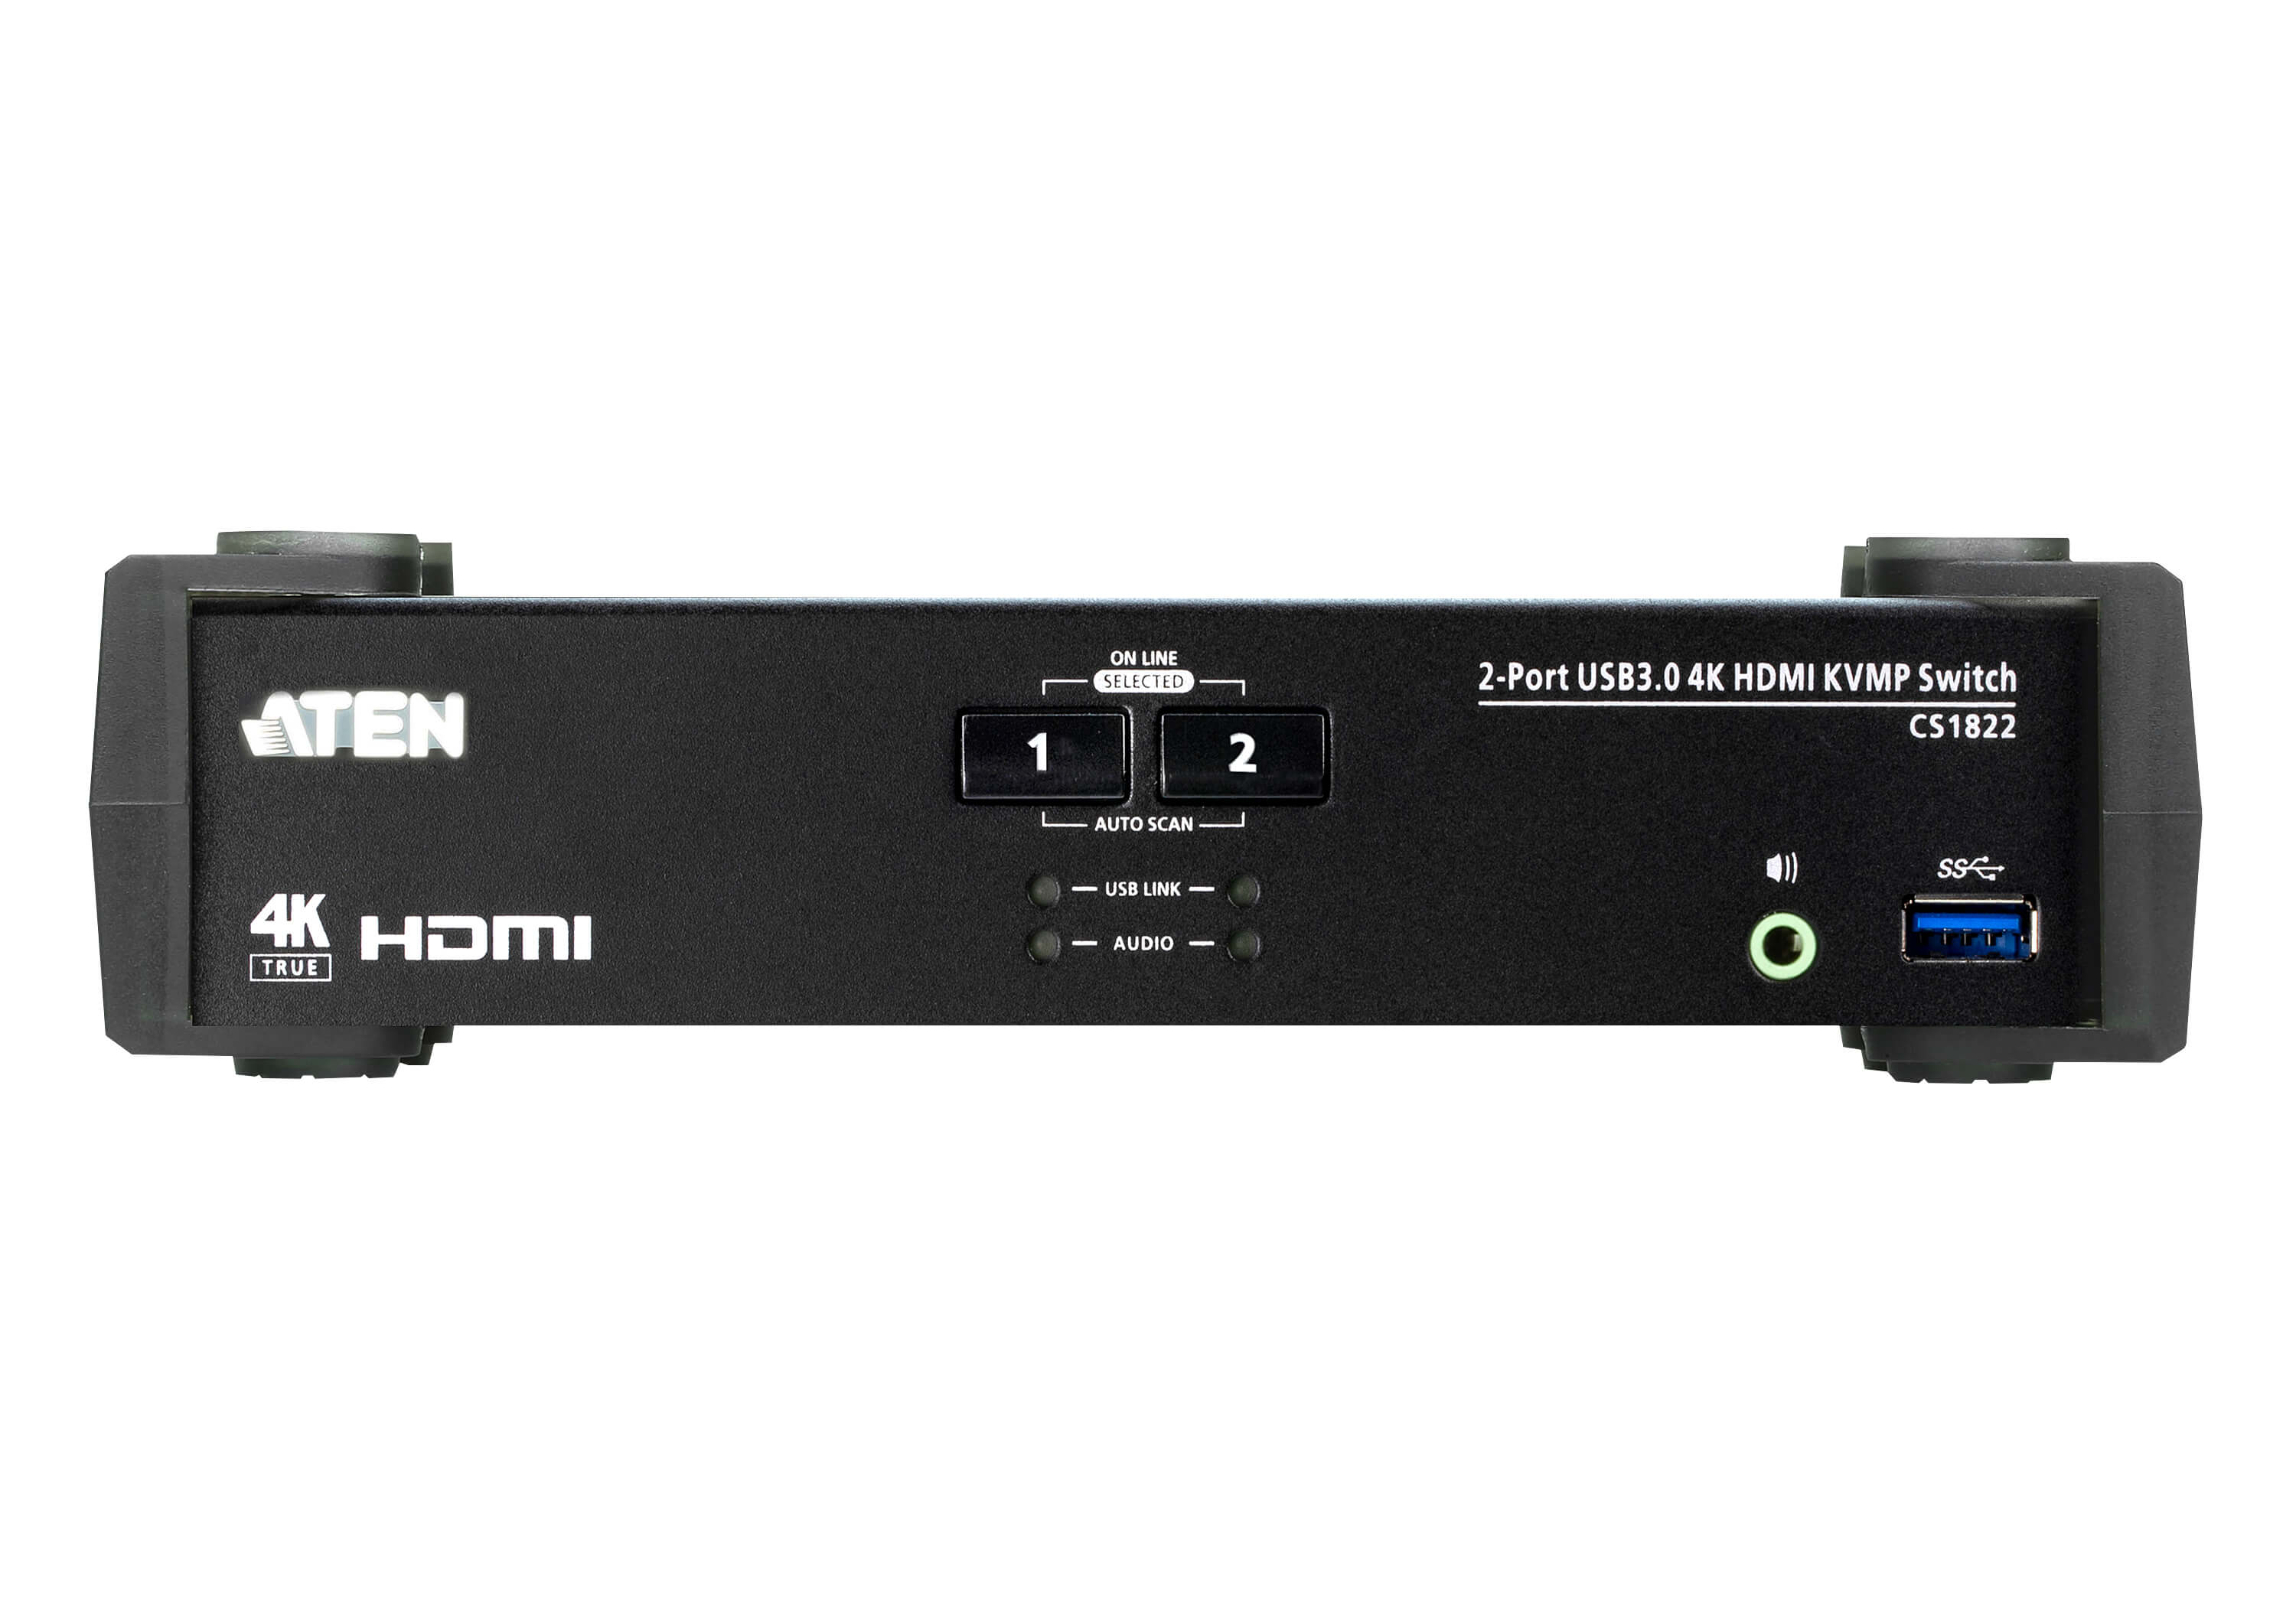 2-Port USB 3.0 4K HDMI KVMP™ Switch with Audio Mixer Mode-3